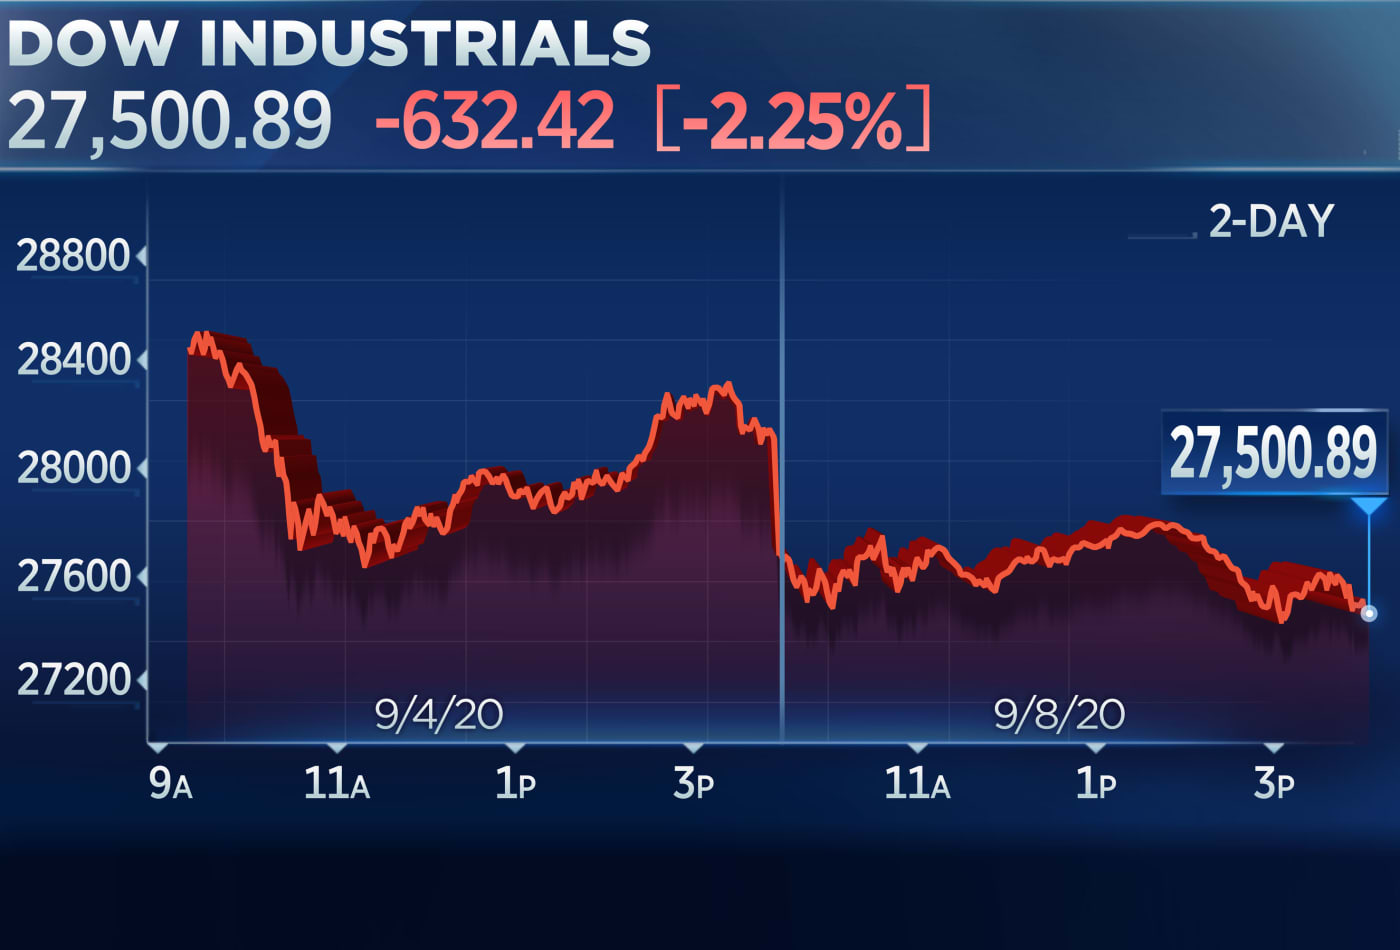 Dow drops 600 points as tech stocks fall again, Nasdaq down 10% in 3 days